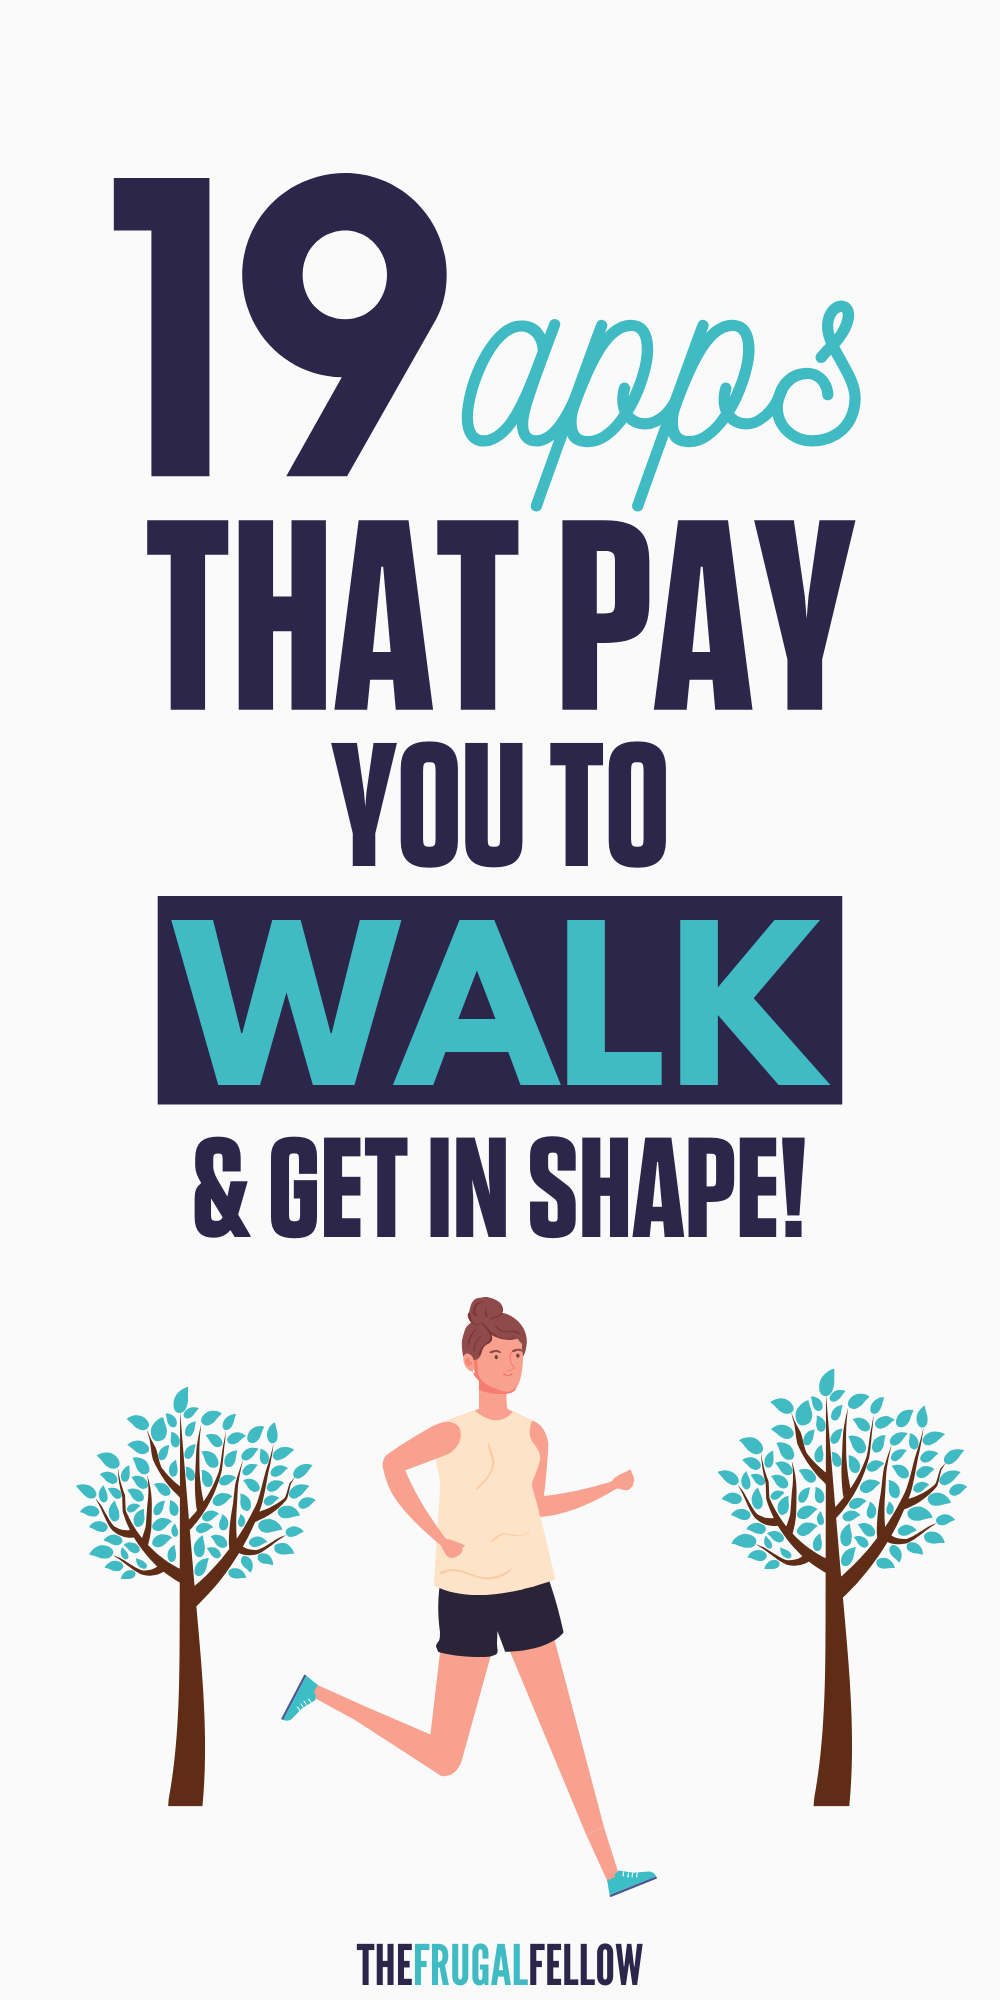 These apps that pay you to walk are some of the best apps that make you money. Pay yourself first by getting paid to walk and get in shape. That's right, apps that pay you to workout are a reality these days. Check out these apps to make money now!